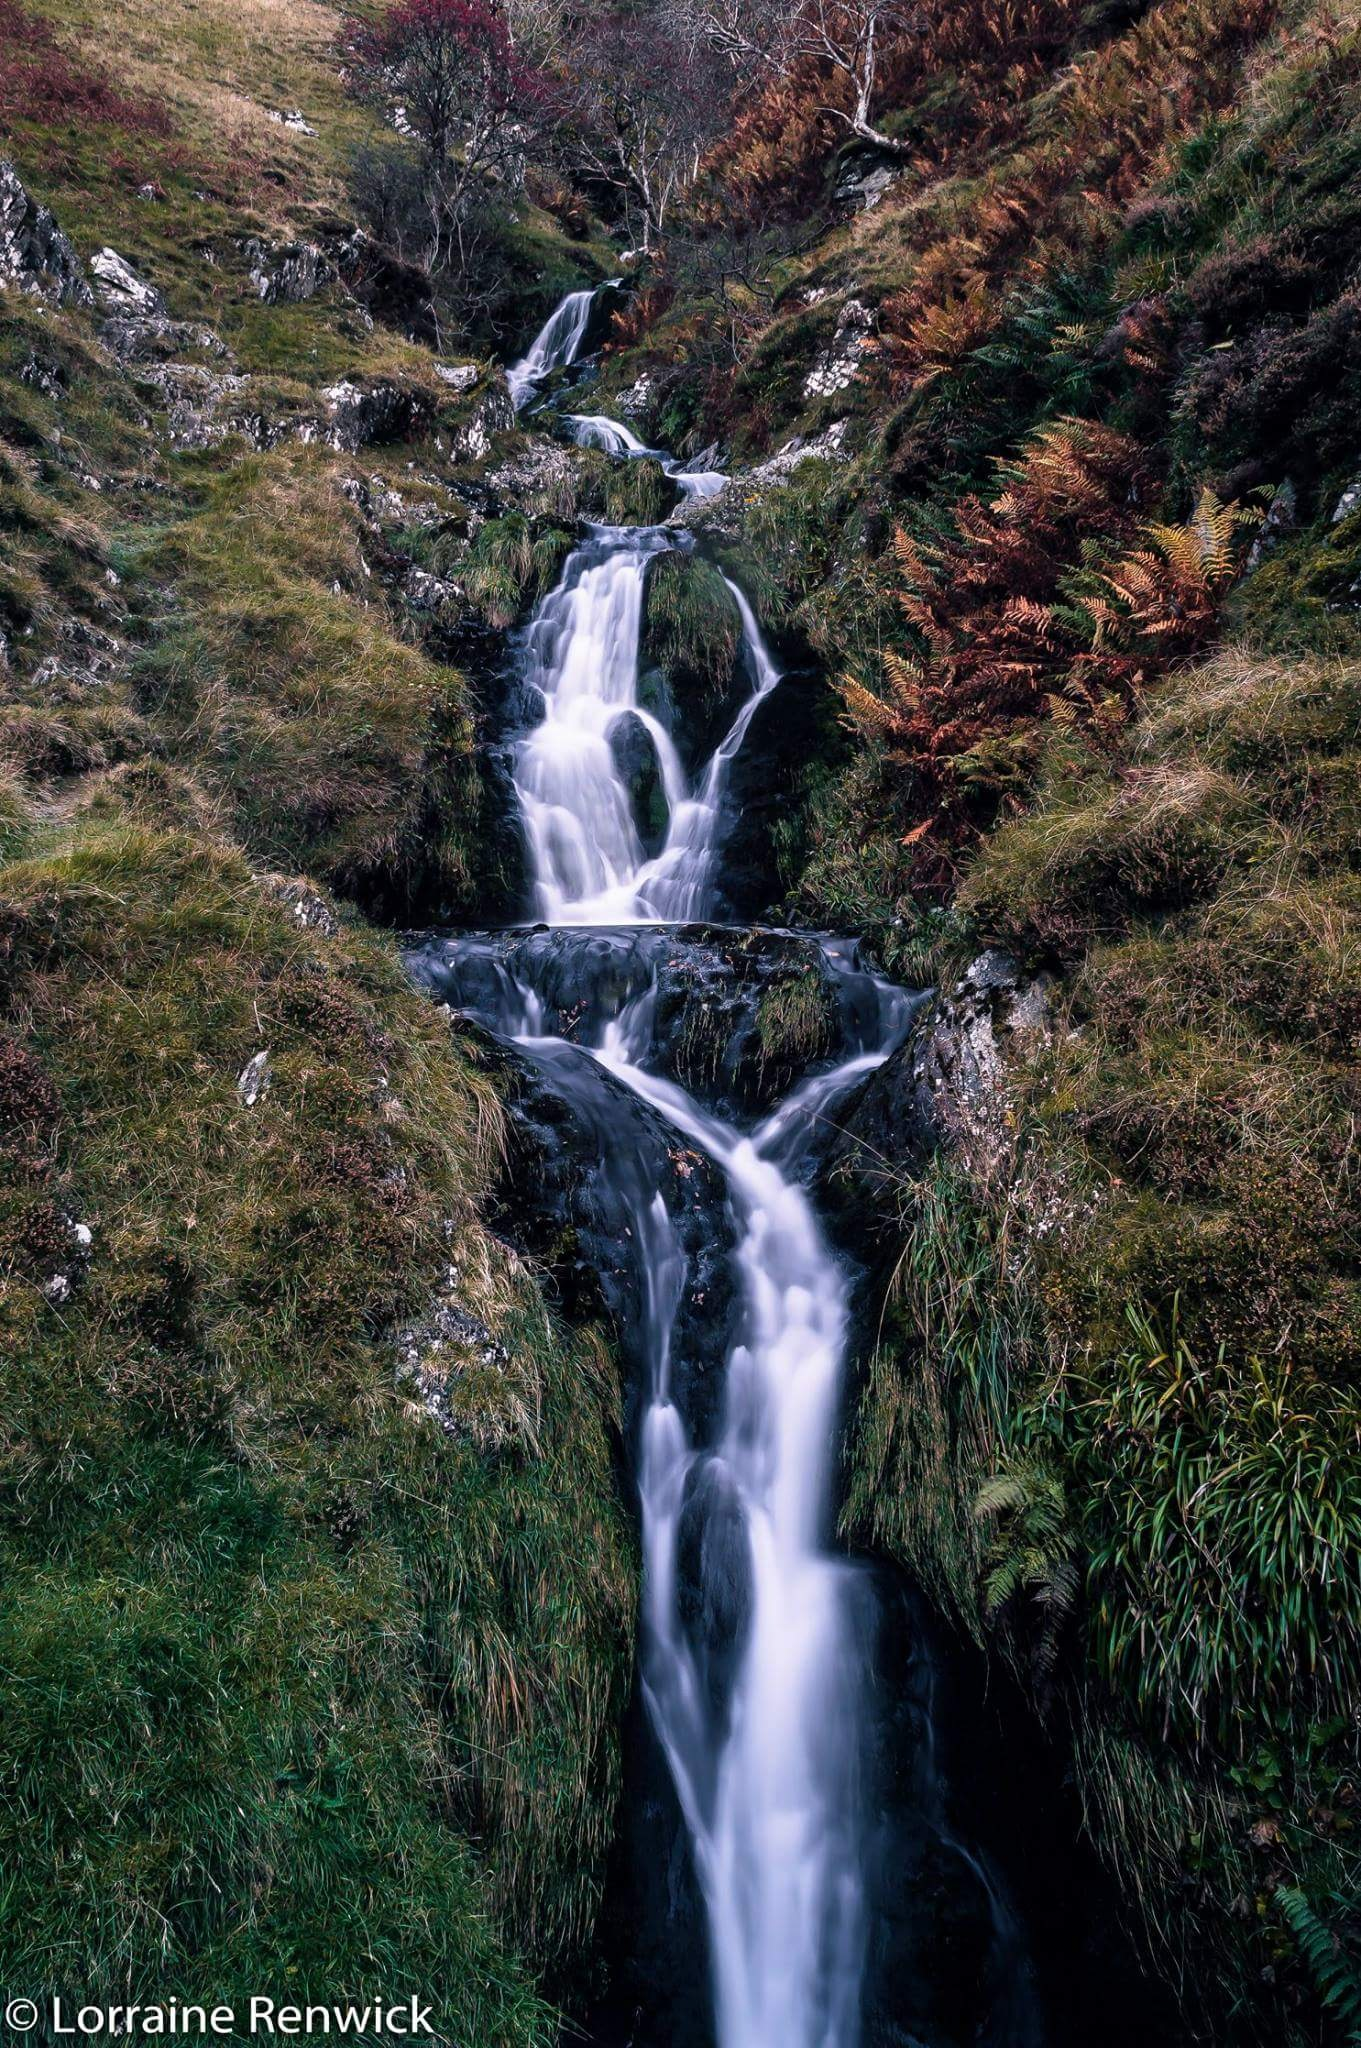 Waterfall on the Dalveen Pass near Dumfries, Scotland by LorraineRenwick